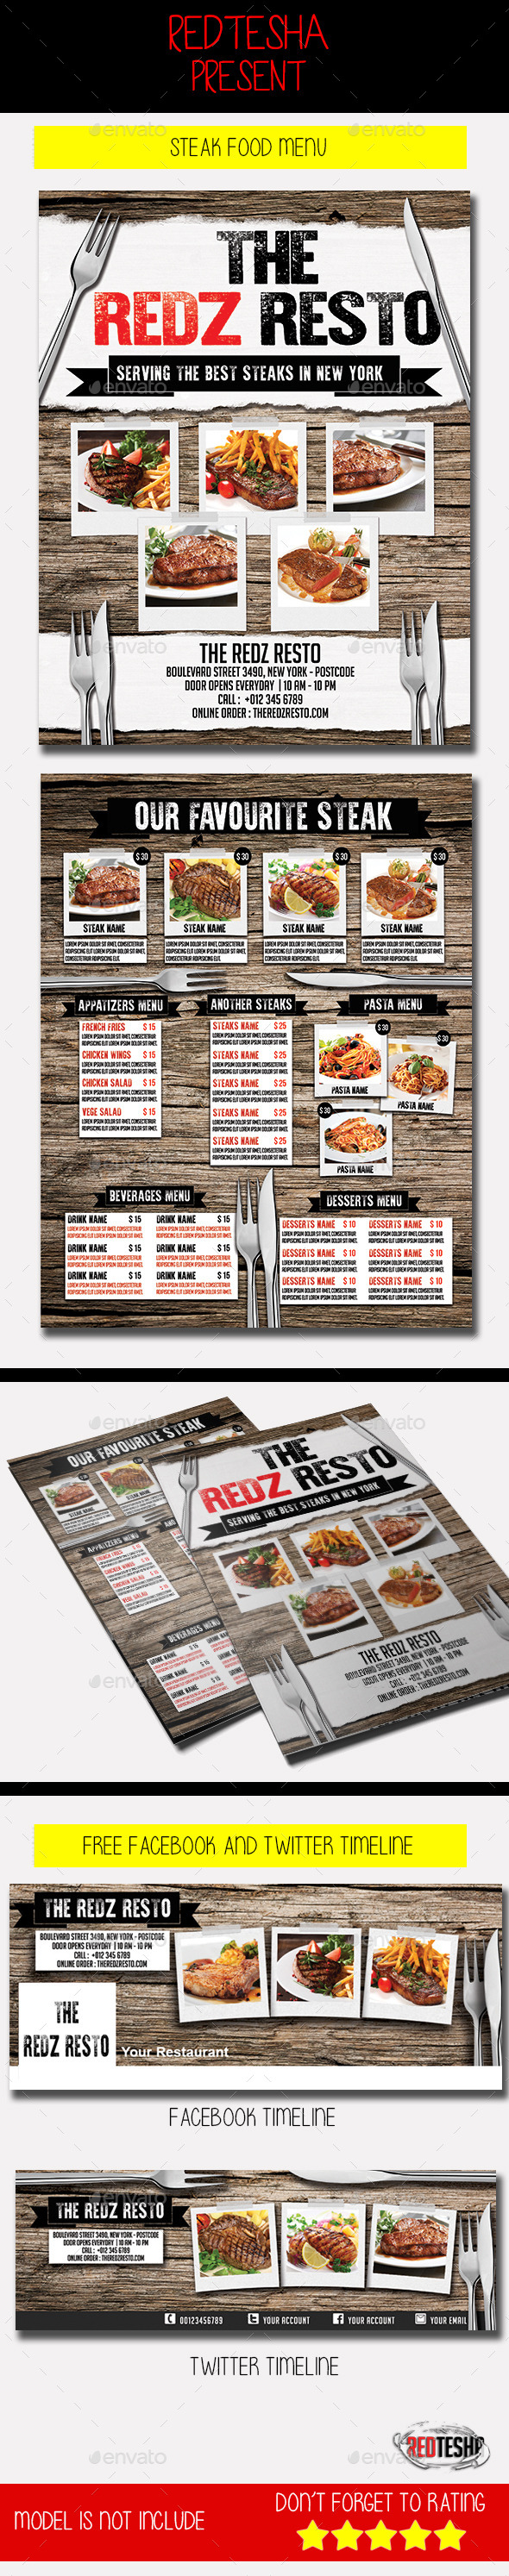 Steak Food Menu - Food Menus Print Templates